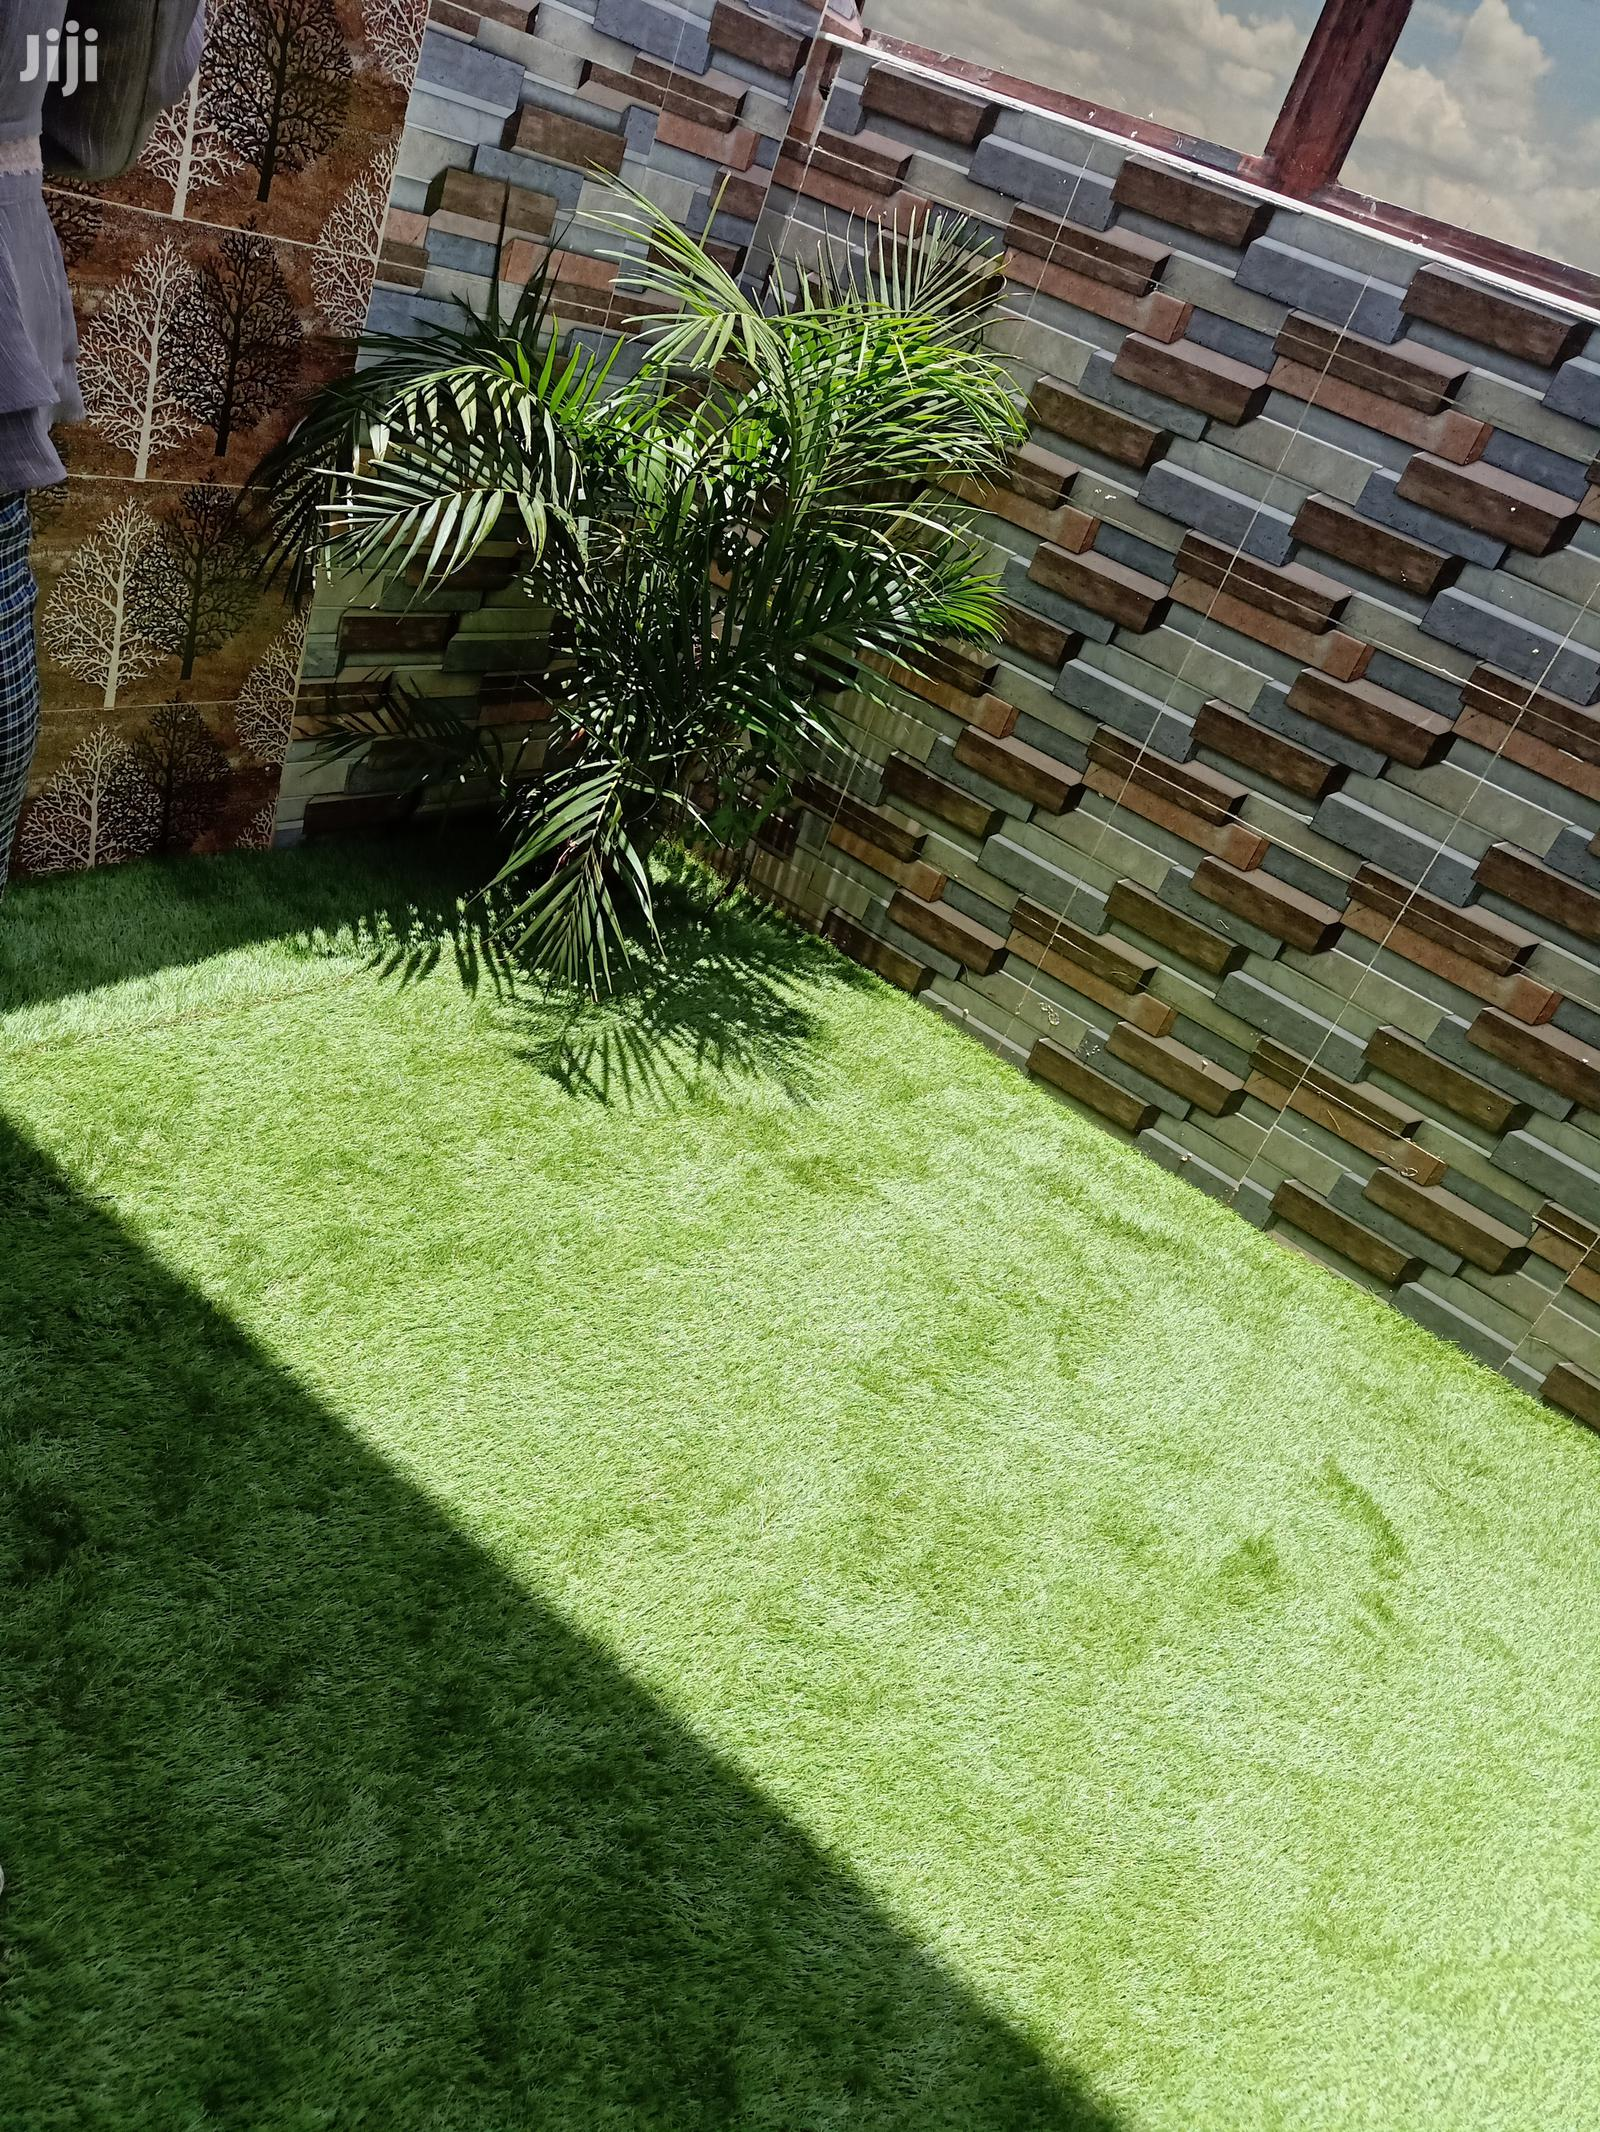 Archive: Lawn Grass And Garden Items